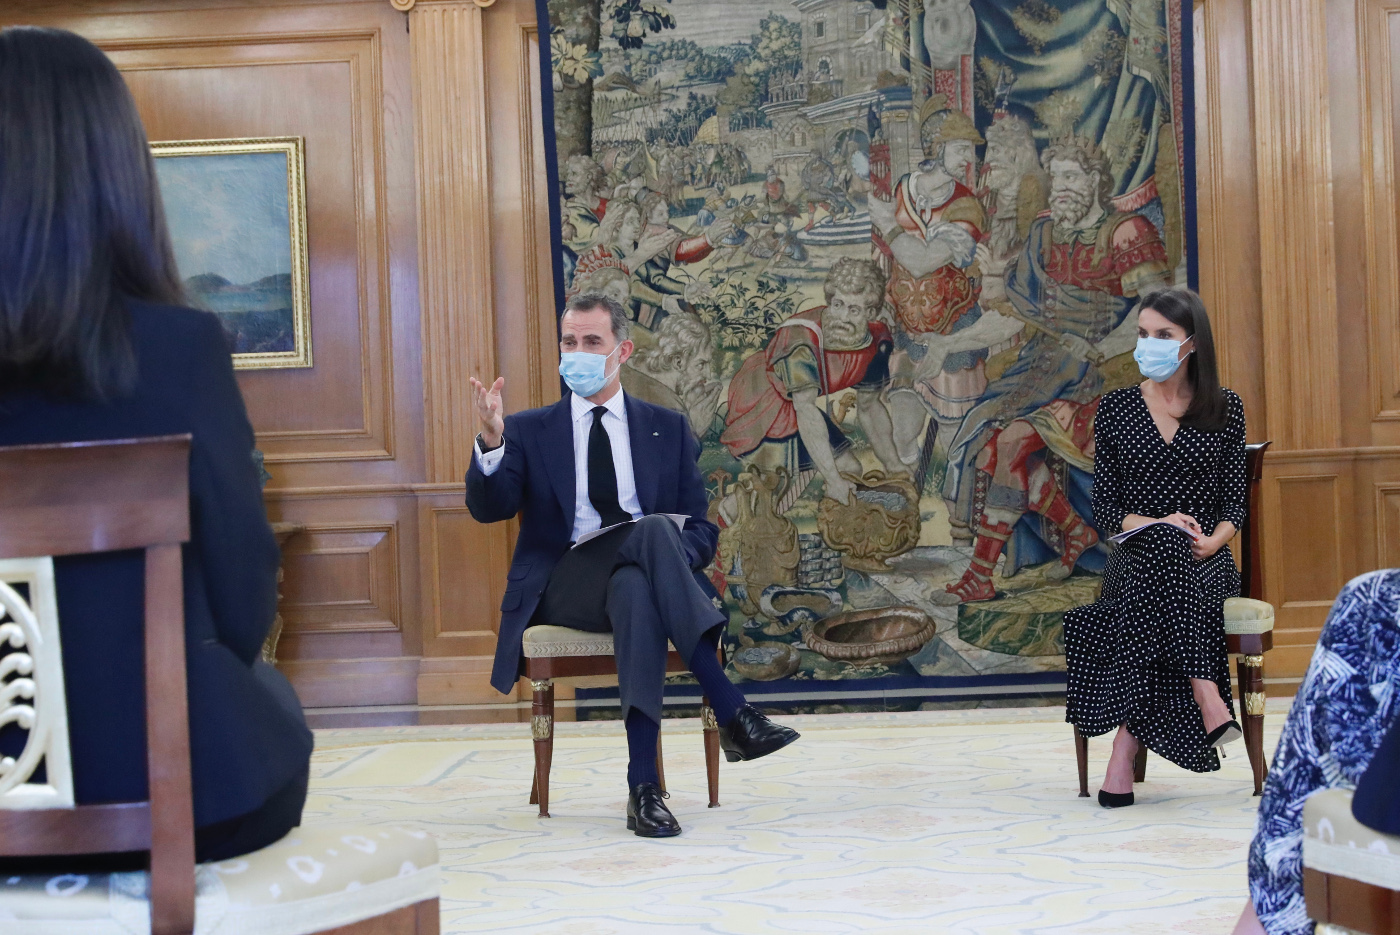 King Felipe and Queen Letizia received audience in three months